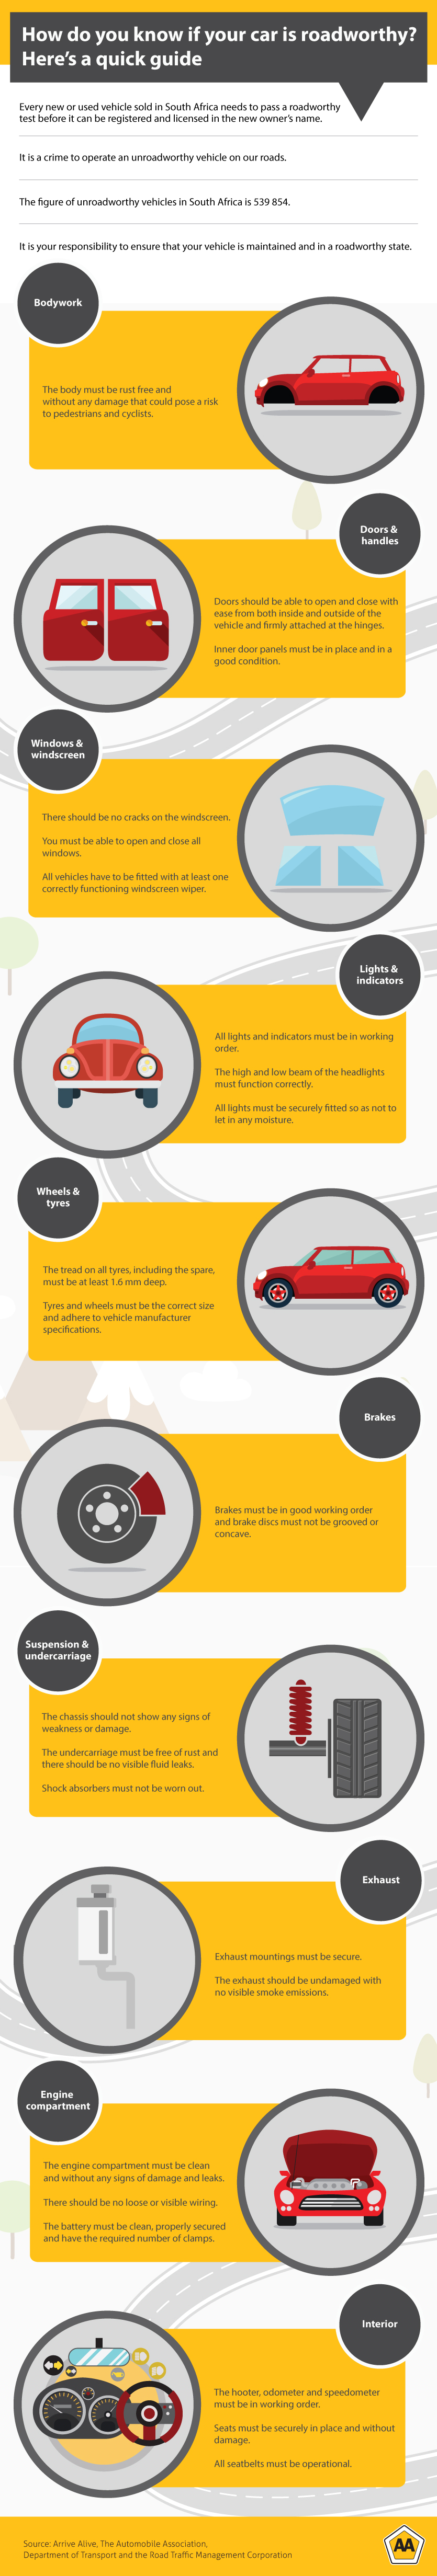 A guide to the main items that are checked during a roadworthy test